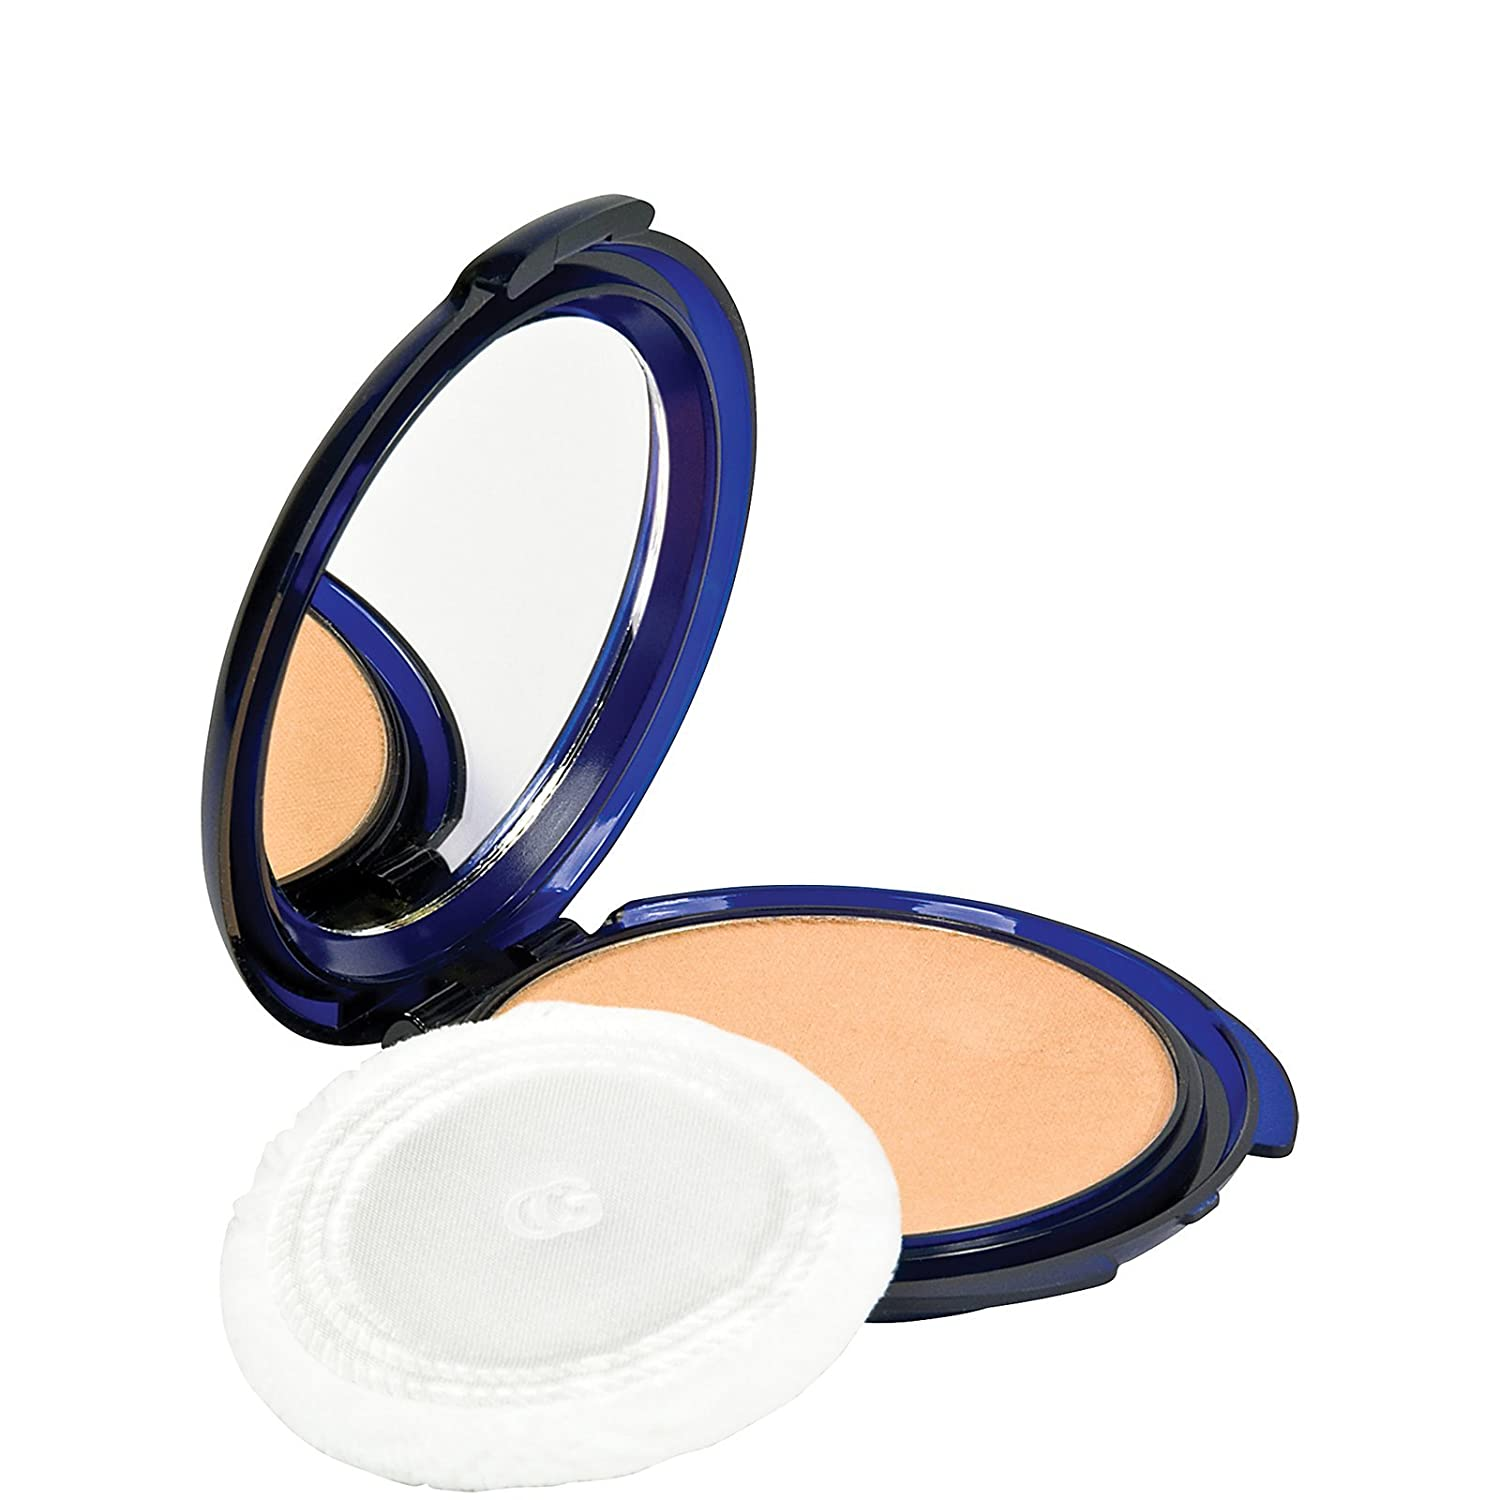 Amazon.com : CoverGirl Smoothers Pressed Powder, Translucent Honey [720] 0.32 oz (Pack of 3) : Beauty